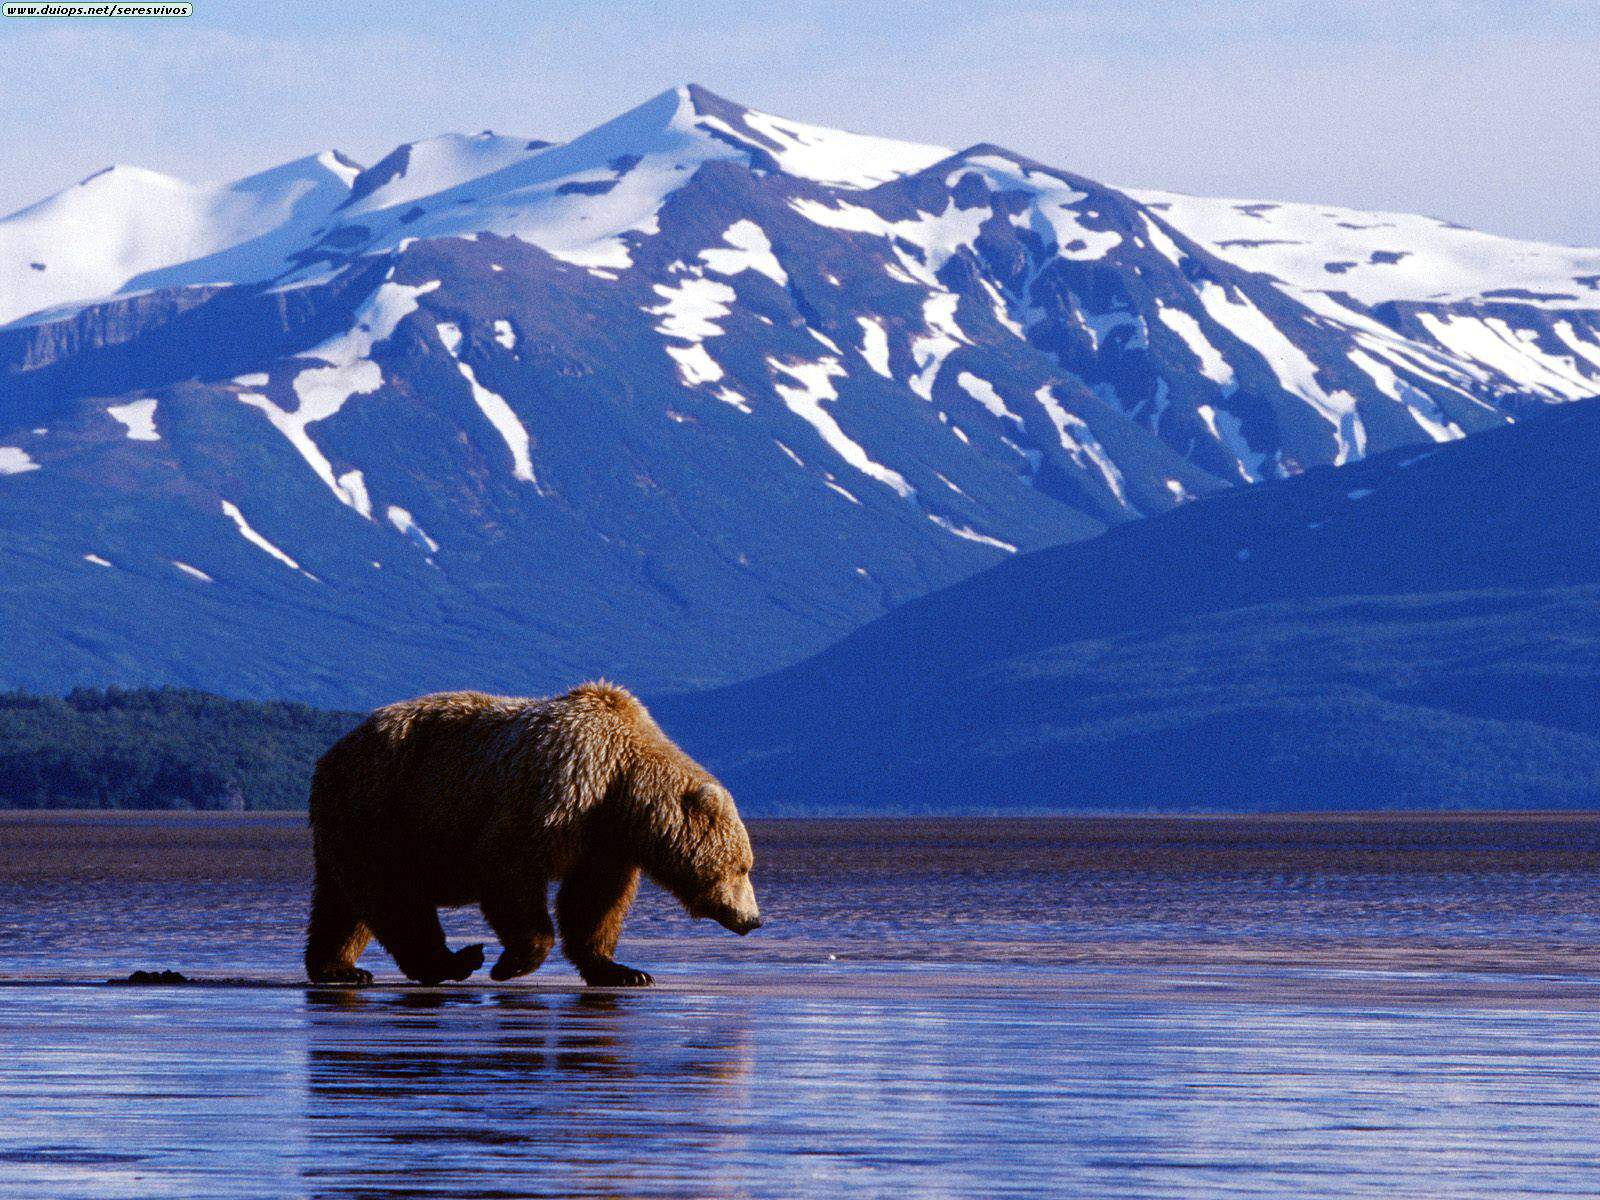 David Beebe was the noted Alaskan on this blog.